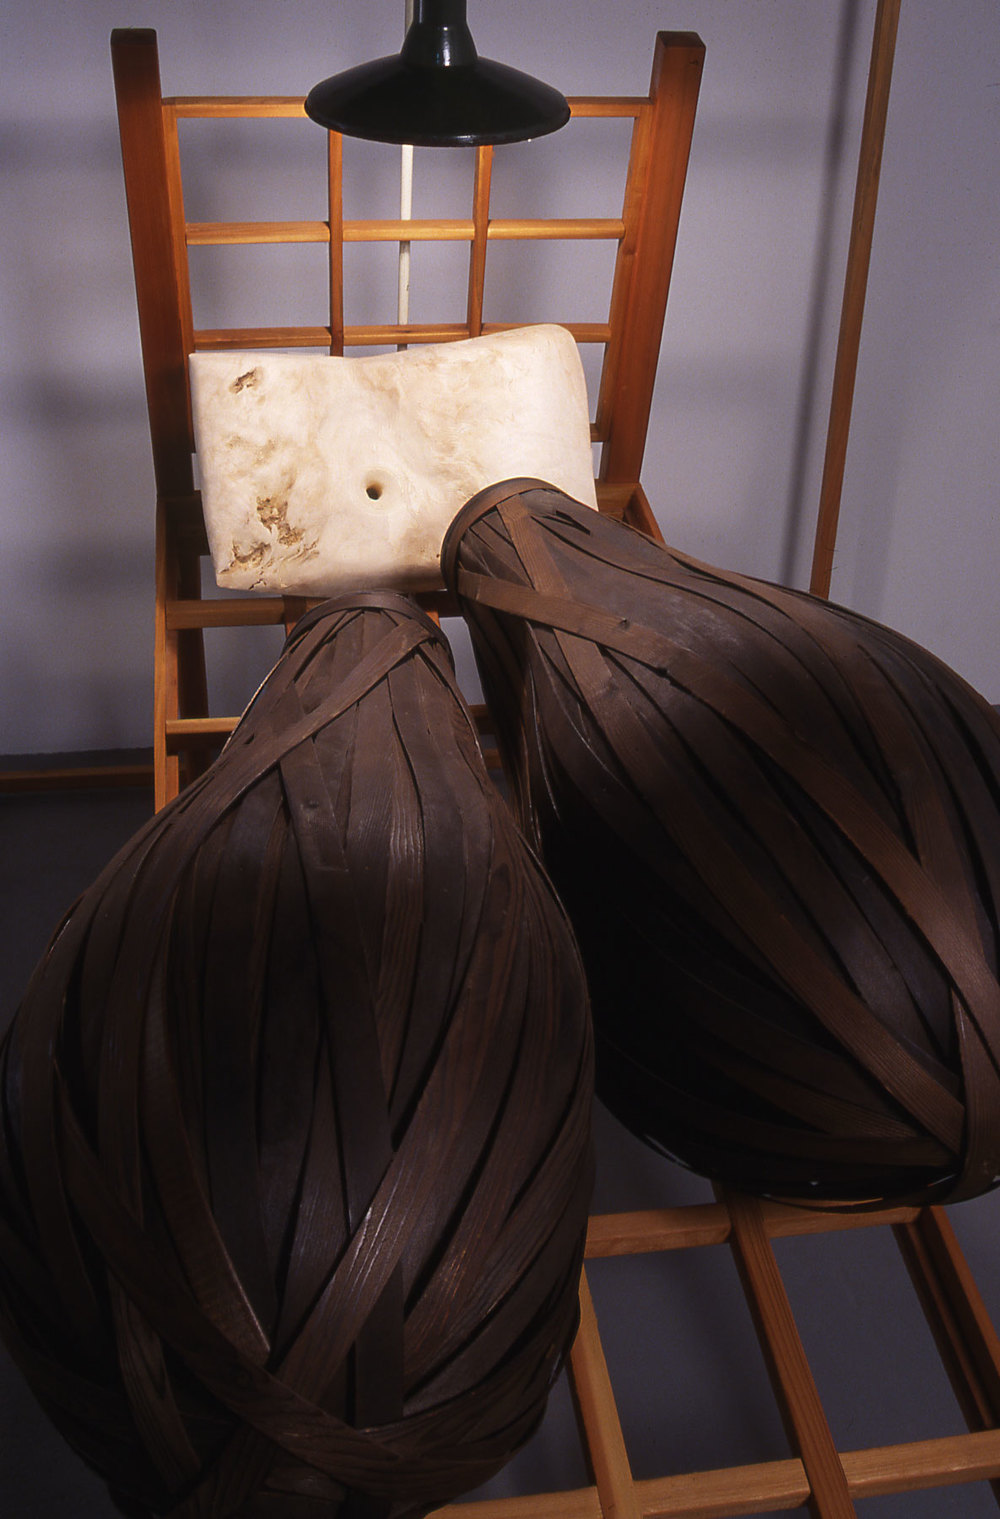 """Sleeping Double in a Single Bed"", wood sculpture detail view, © Tom Gormally"